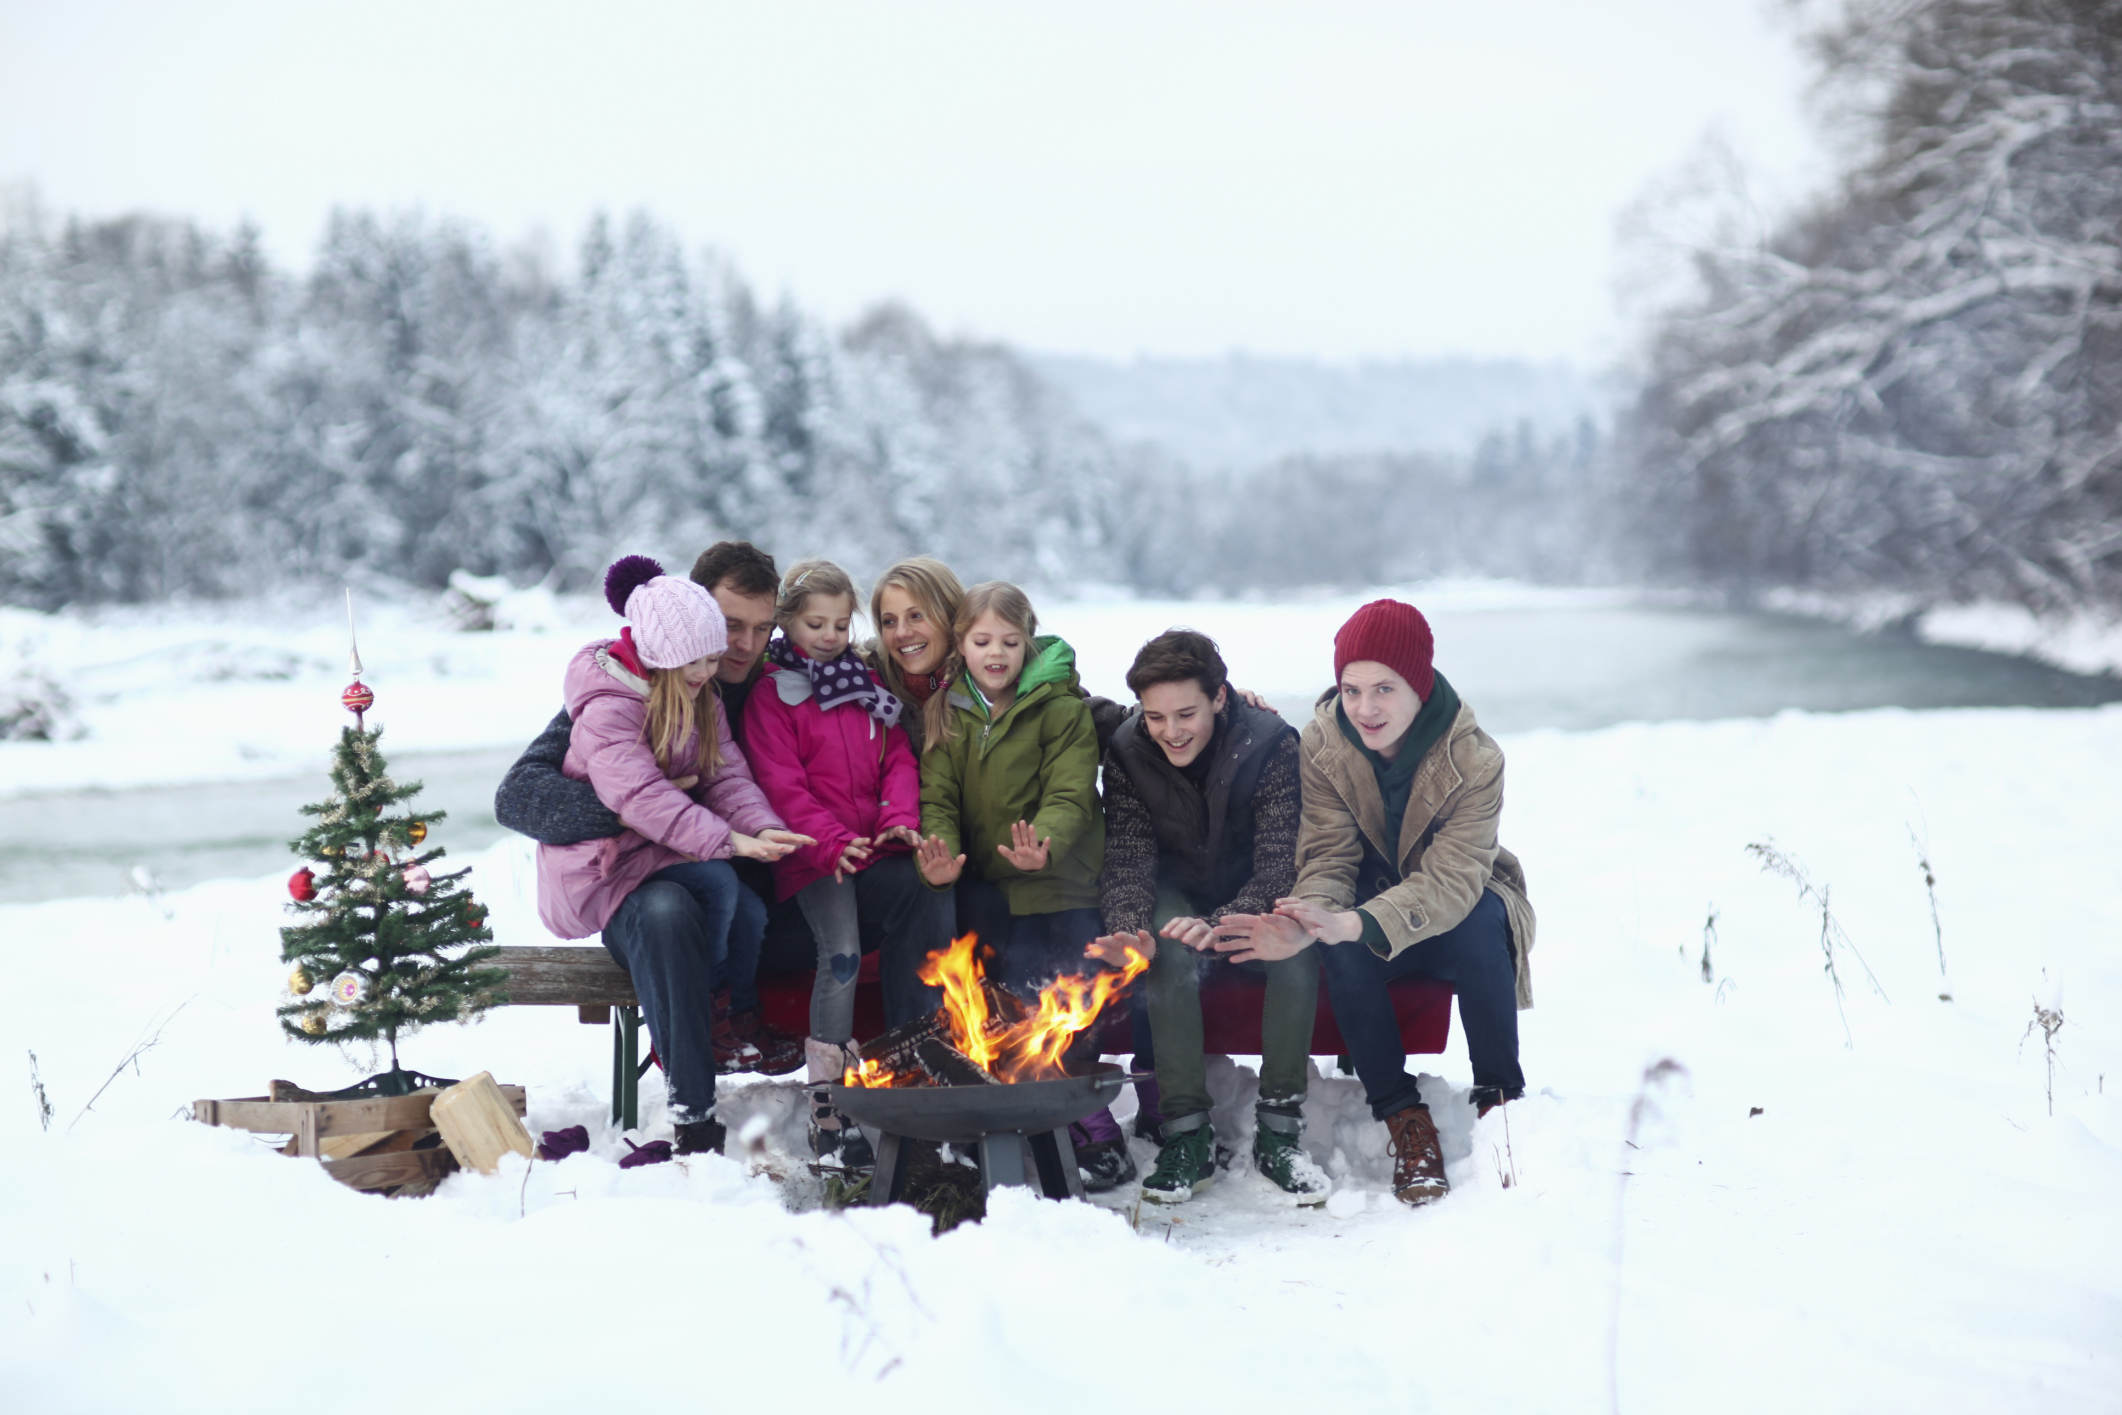 10 Winter Photo Ideas That The Whole Family Can Enjoy